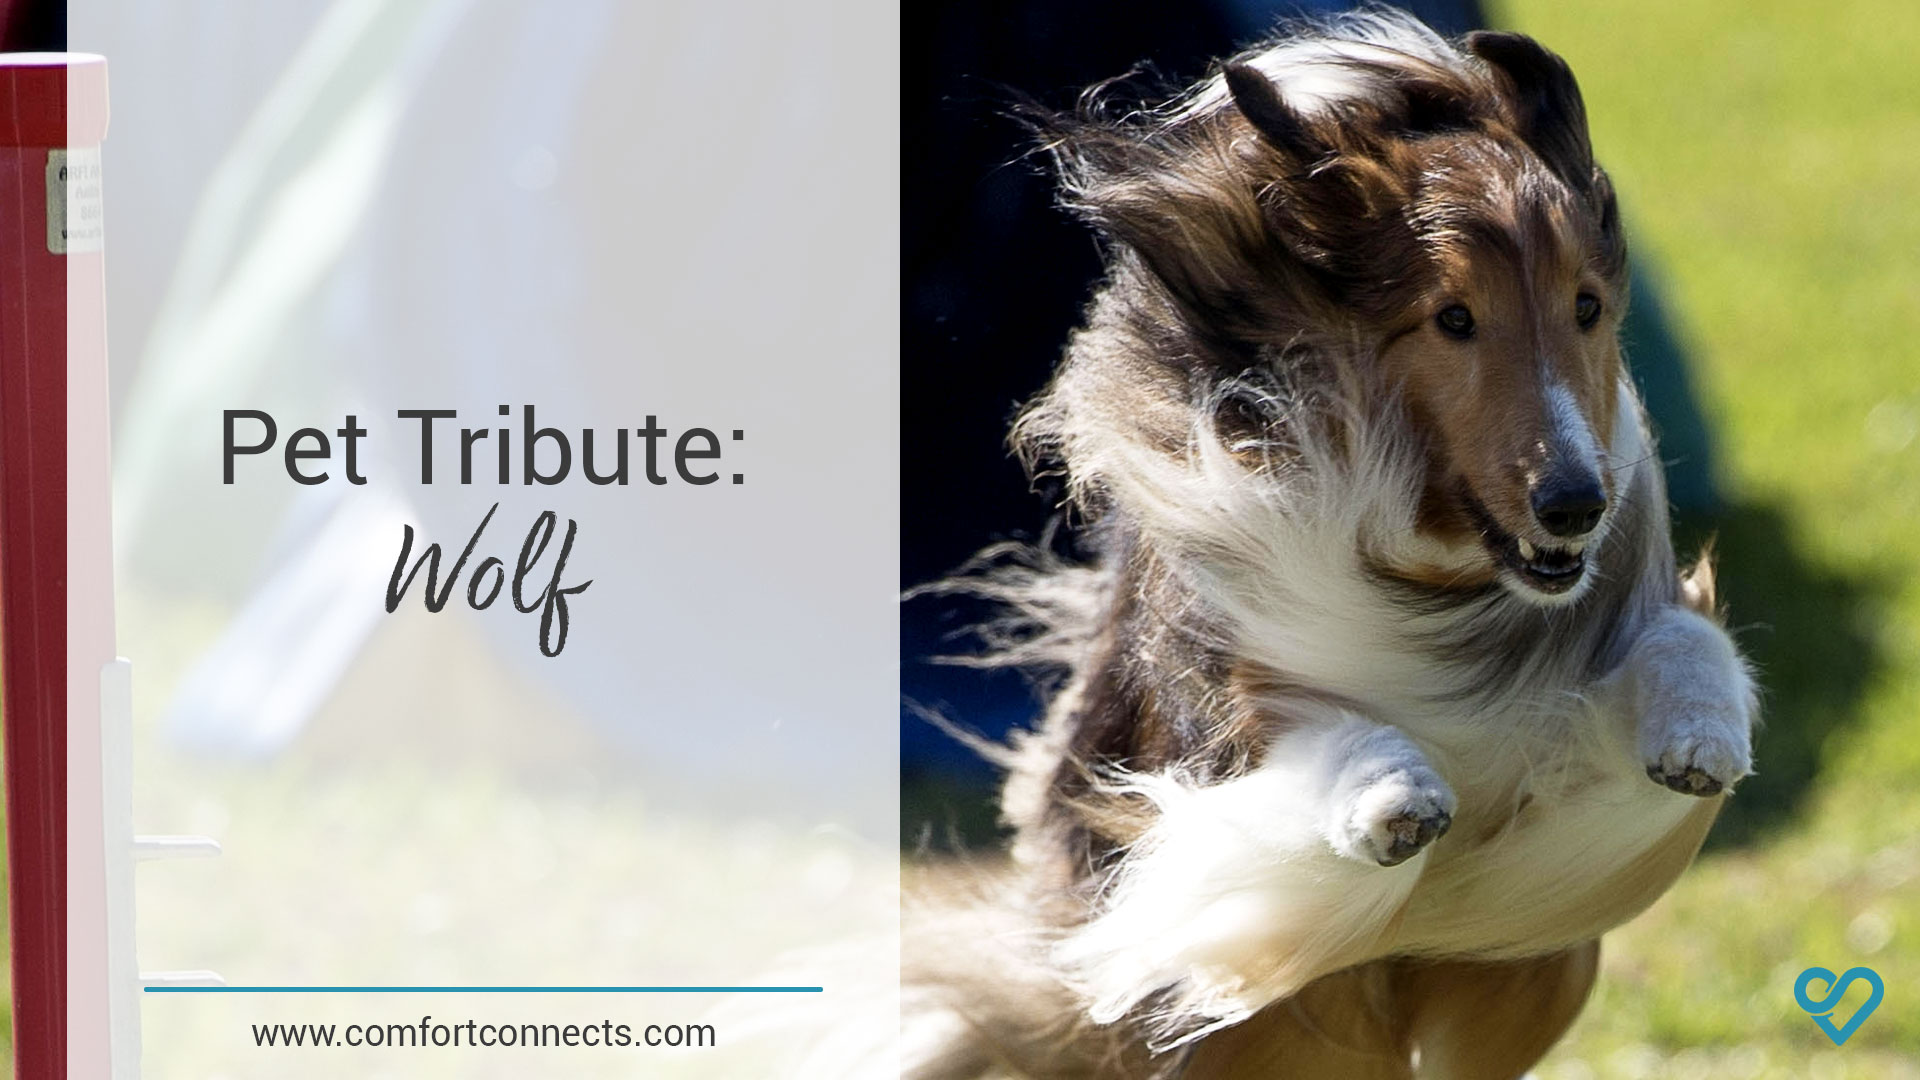 Pet Tribute: Wolf